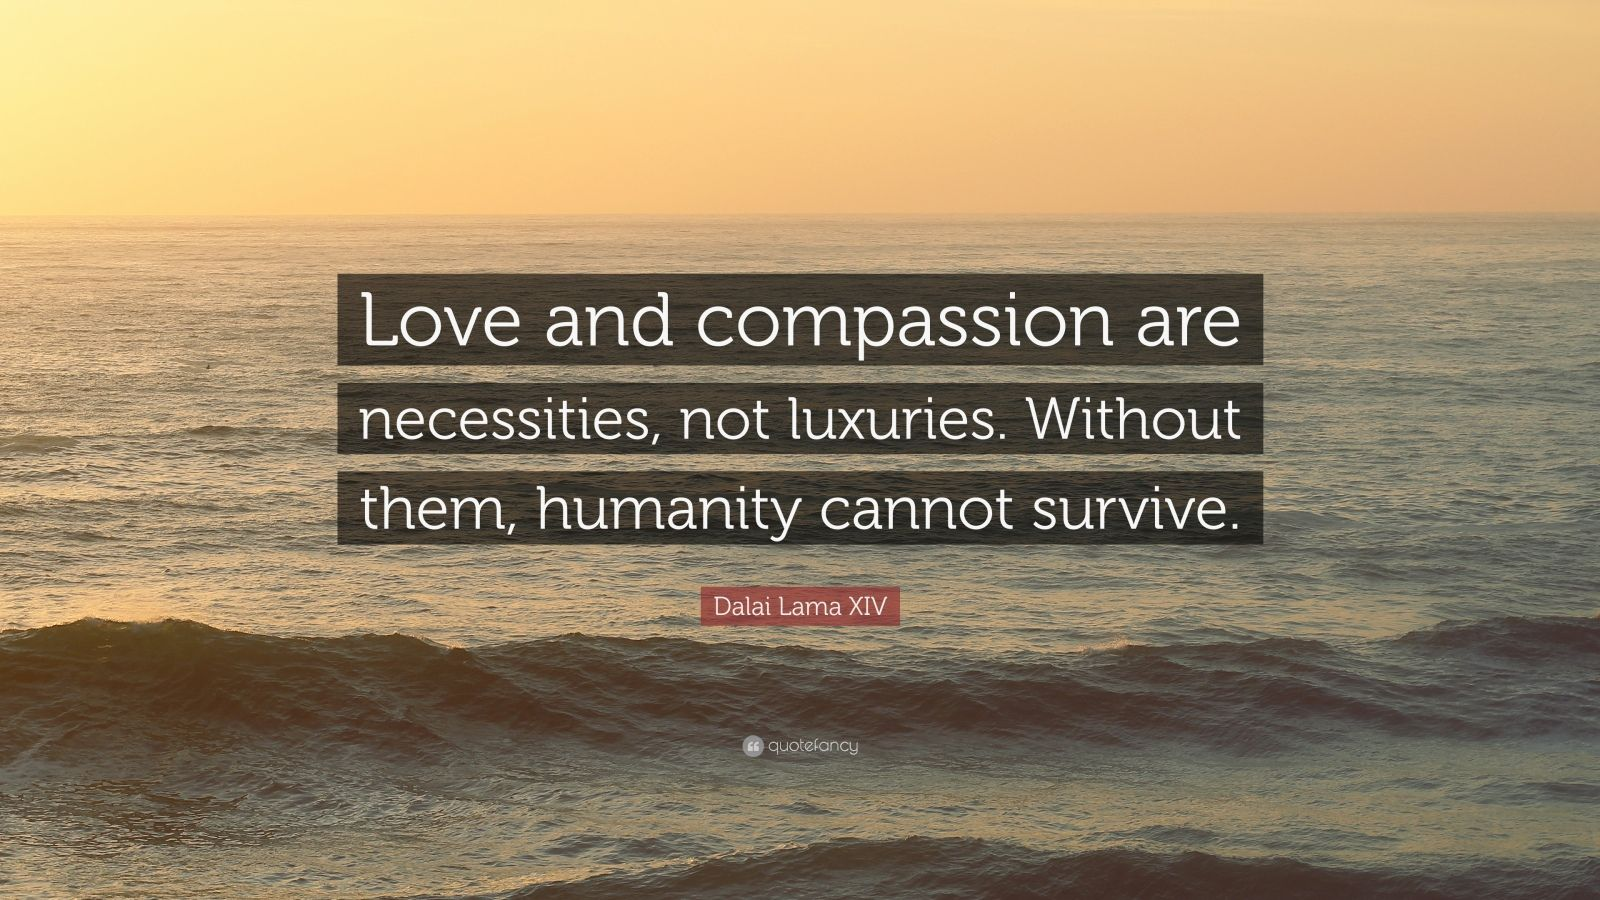 Dalai Lama Quotes Wallpapers Dalai Lama Xiv Quote Love And Compassion Are Necessities